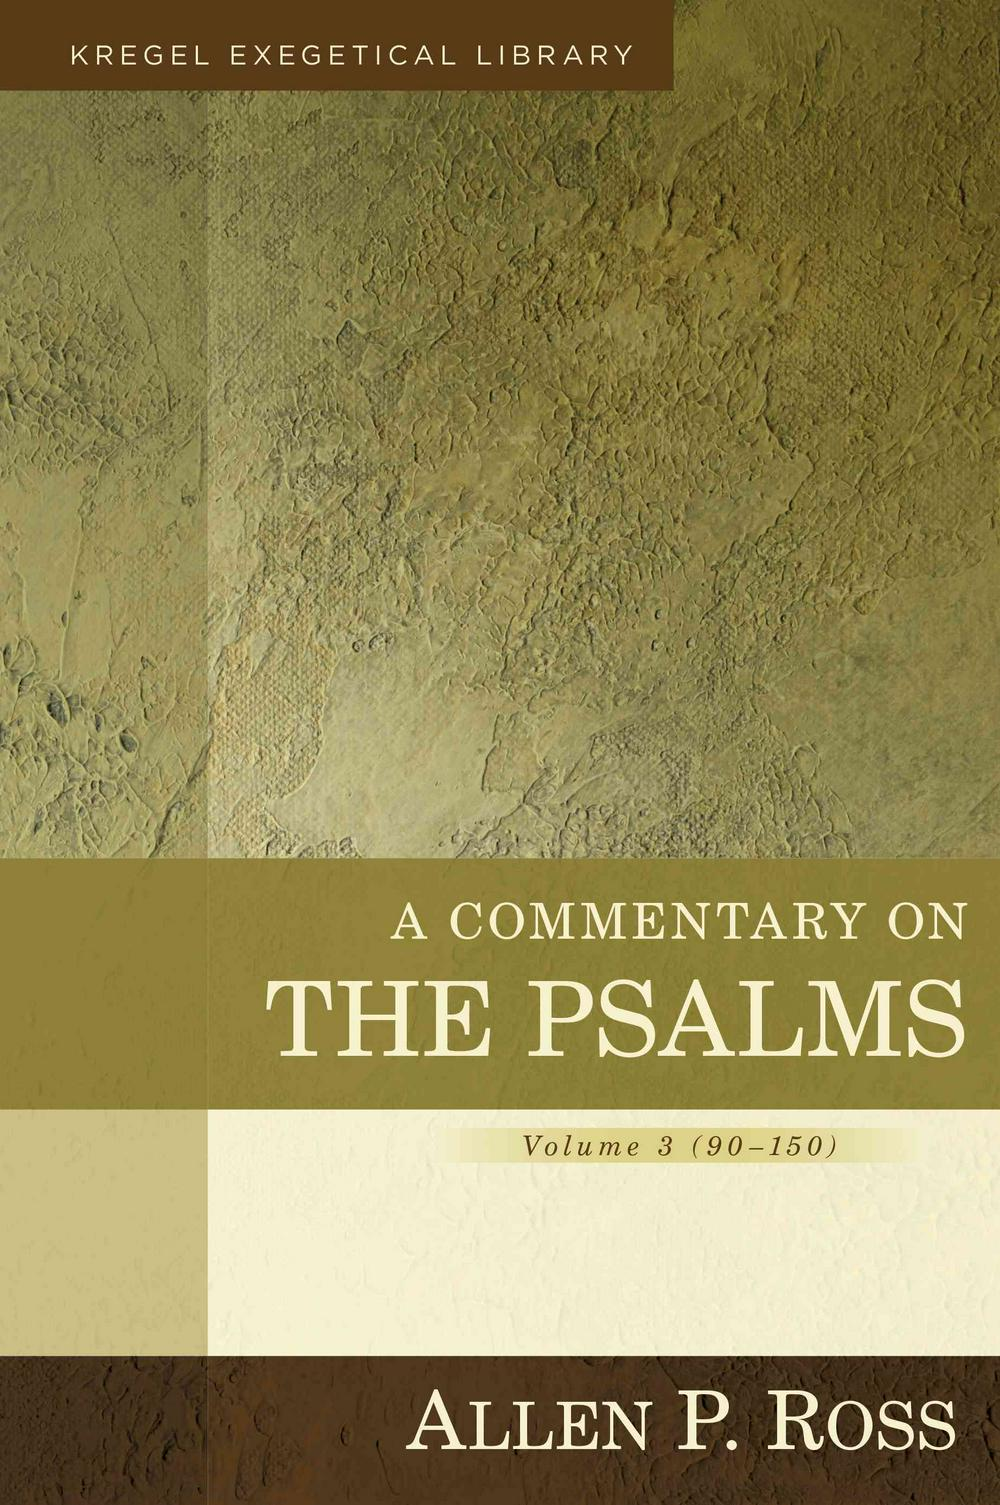 A Commentary on the Psalms: 3 (Kregel Exegetical Library)